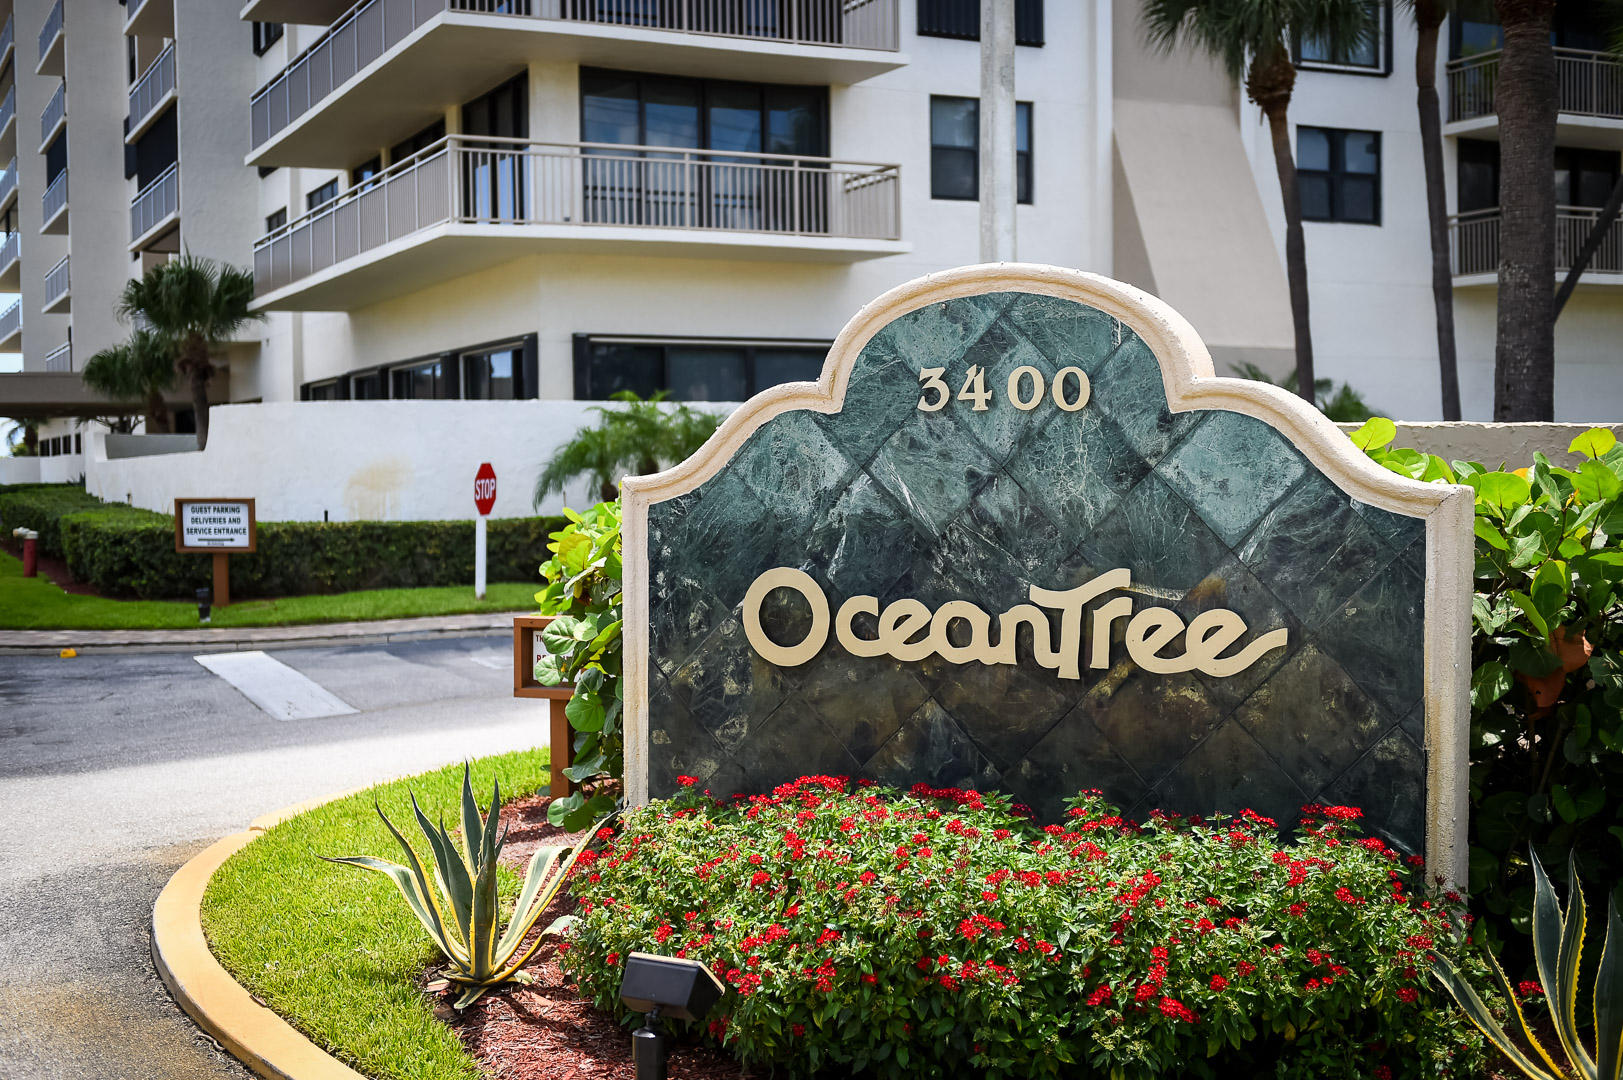 WELCOME TO OCEANTREE